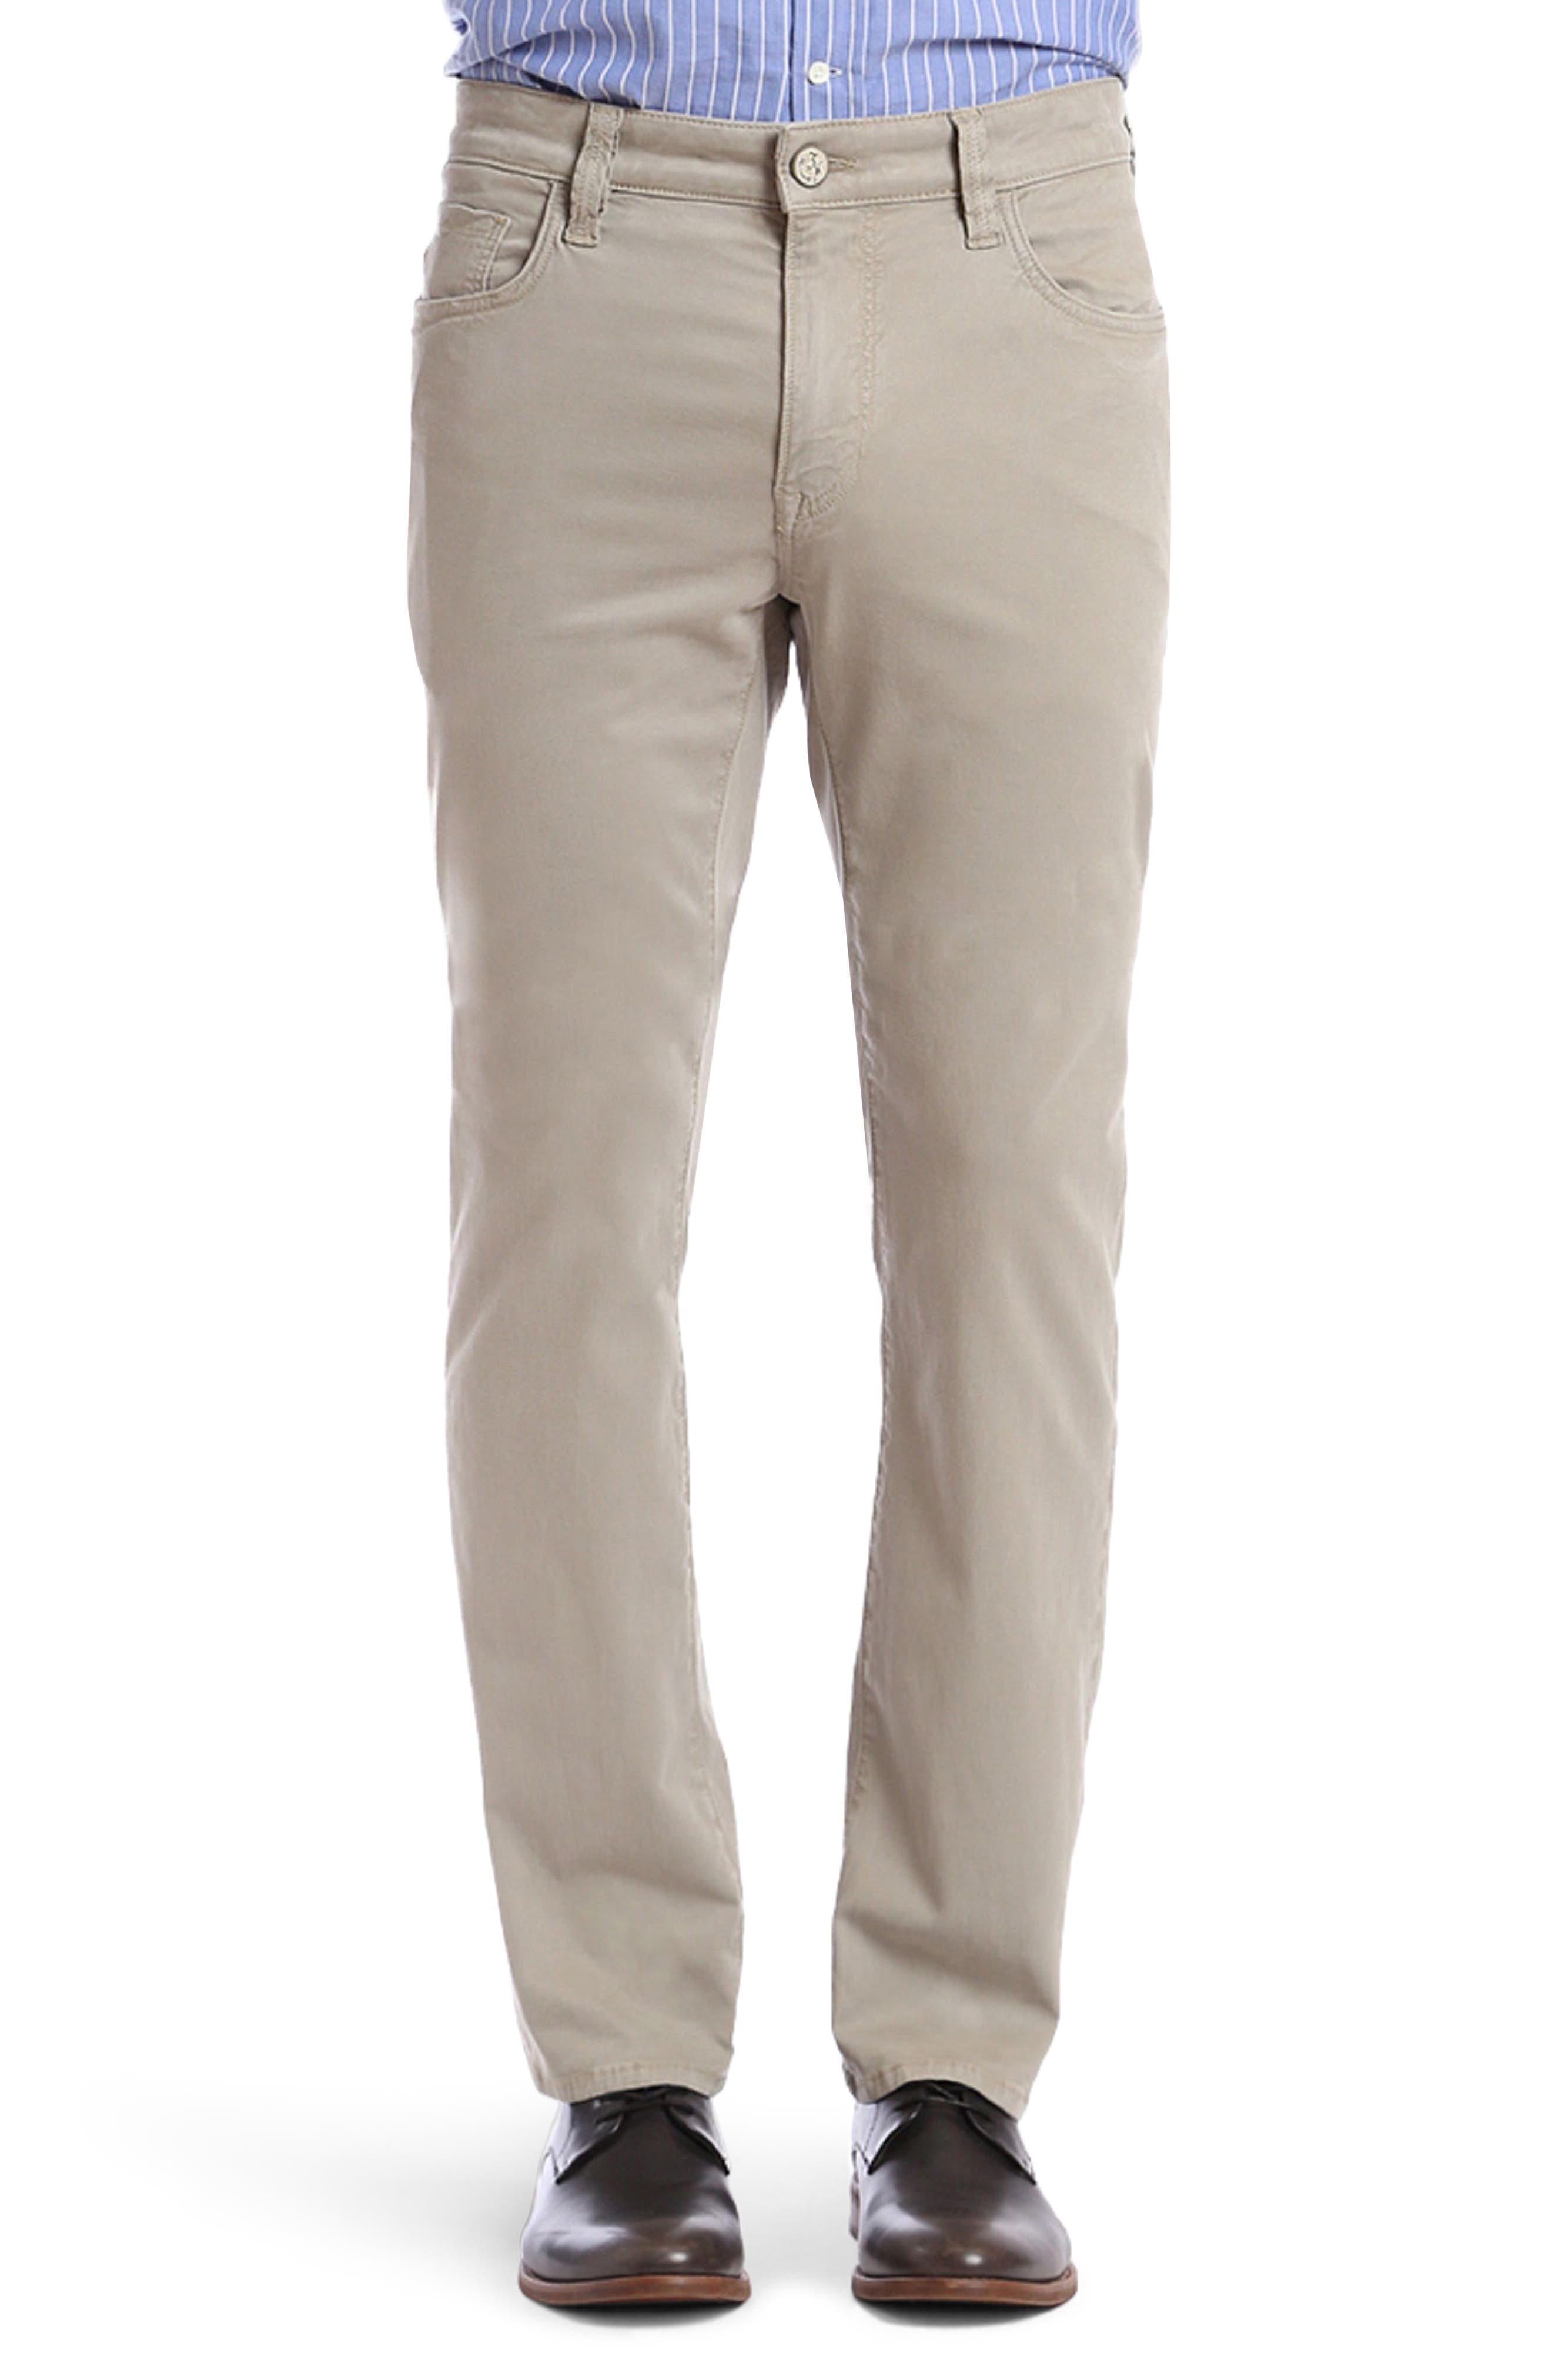 Courage Straight Fit Twill Pants,                             Main thumbnail 1, color,                             KHAKI FINE TWILL